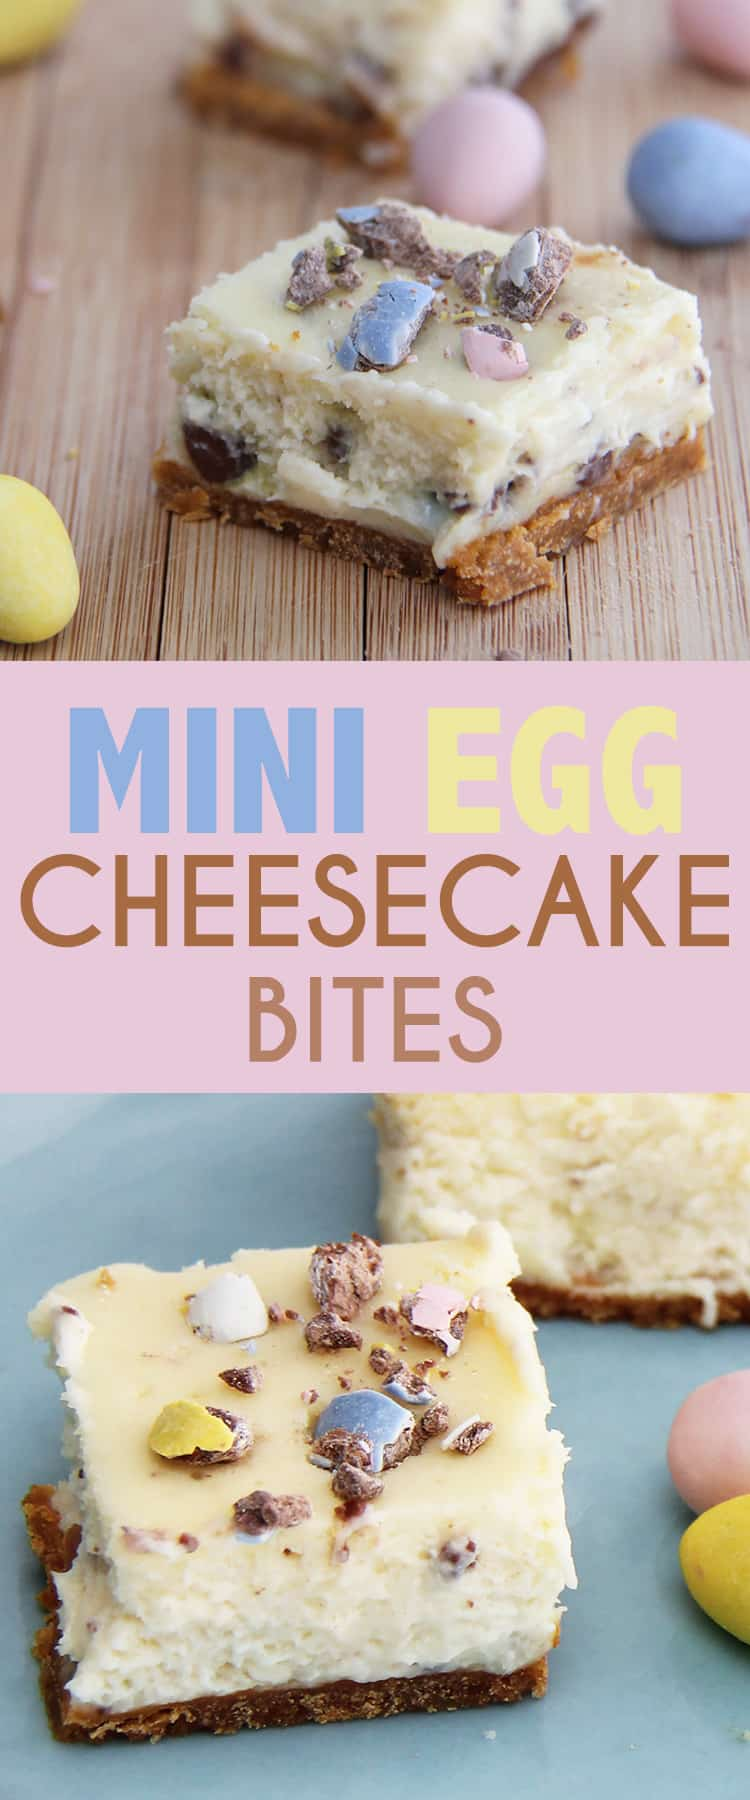 Mini Egg Cheesecake Bites are a perfect treat for Easter - the colours are fresh like spring, and the candy and vanilla cheesecake taste is amazing. #cheesecake #minieggs #easter #easterrecipes #dessertrecipes #springdessert